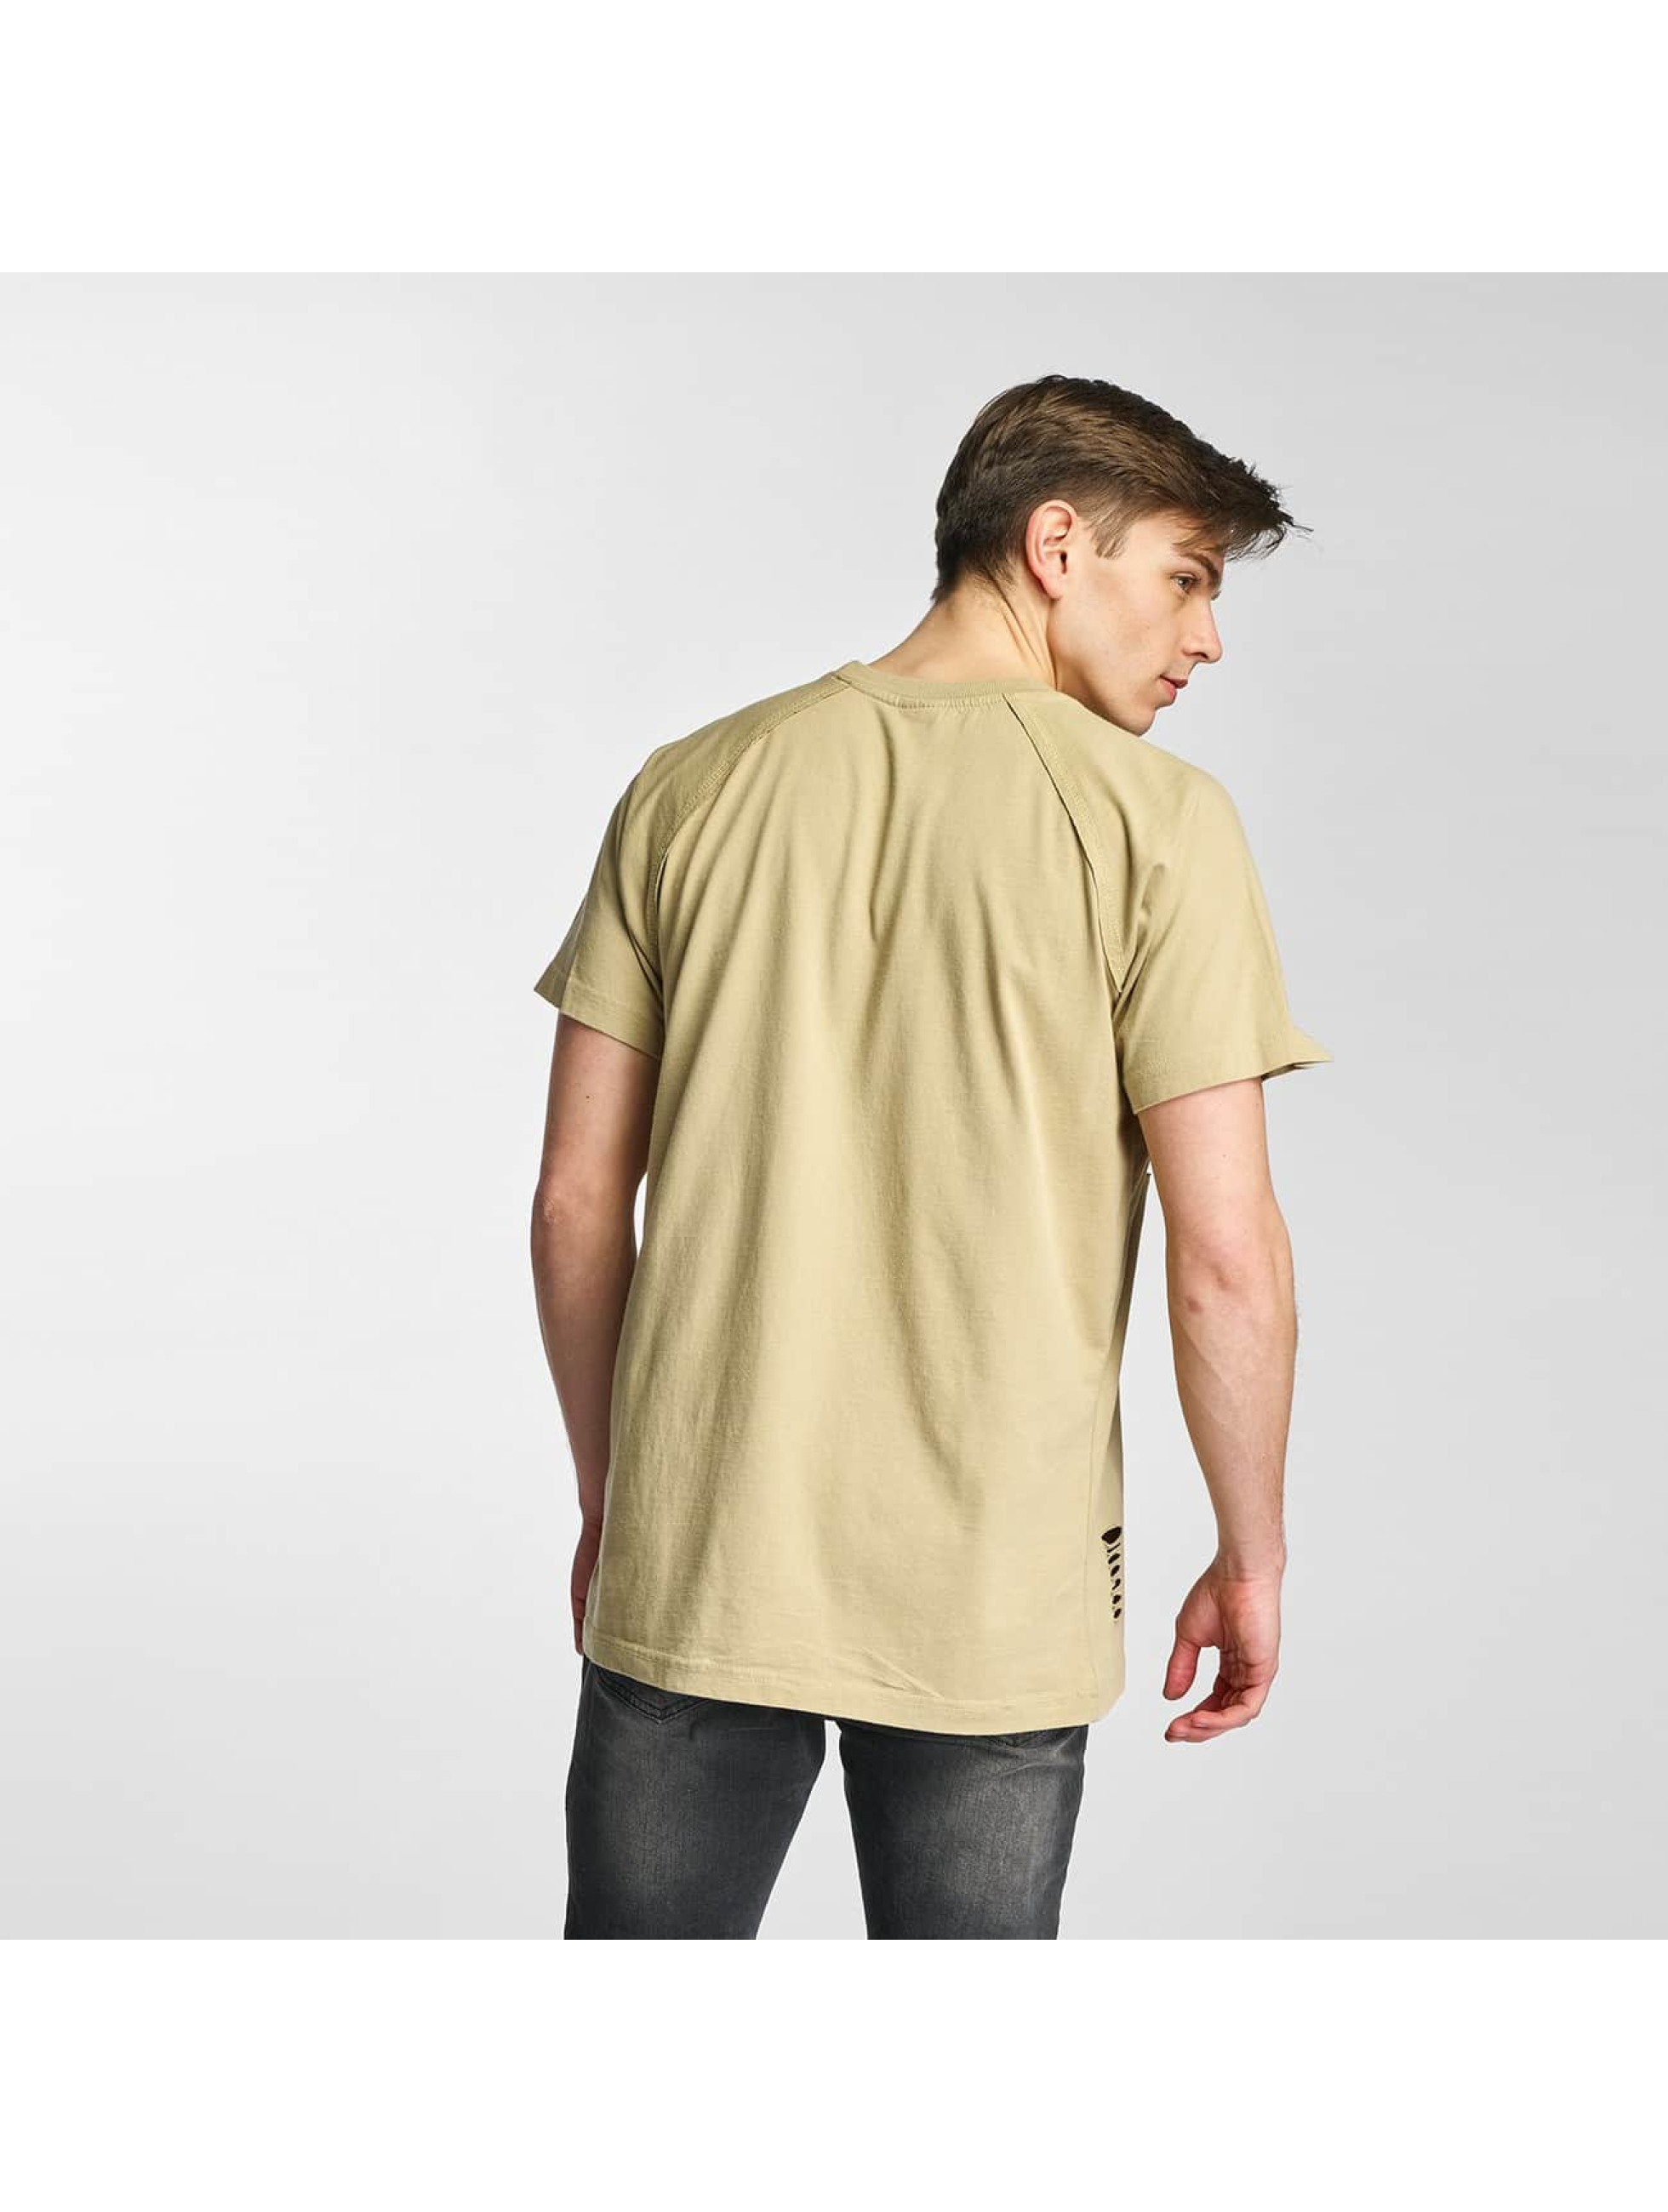 urban classics herren t shirt ripped in beige 305568. Black Bedroom Furniture Sets. Home Design Ideas